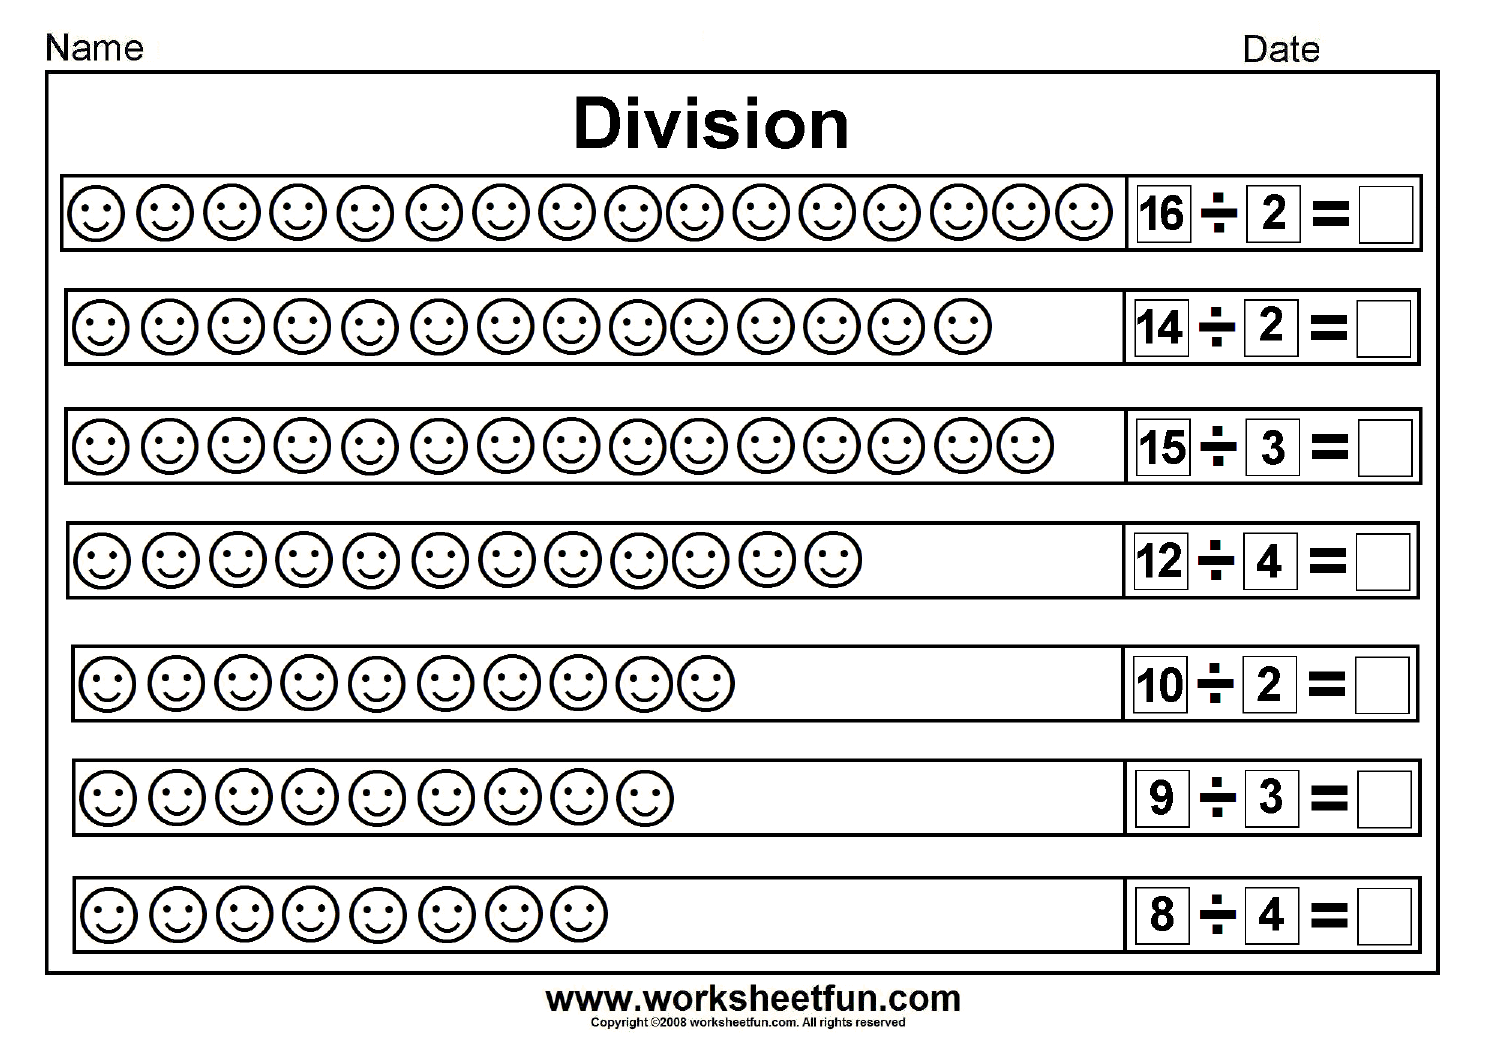 Division Worksheets For 3rd Grade Worksheet – 3 Grade Division Worksheets